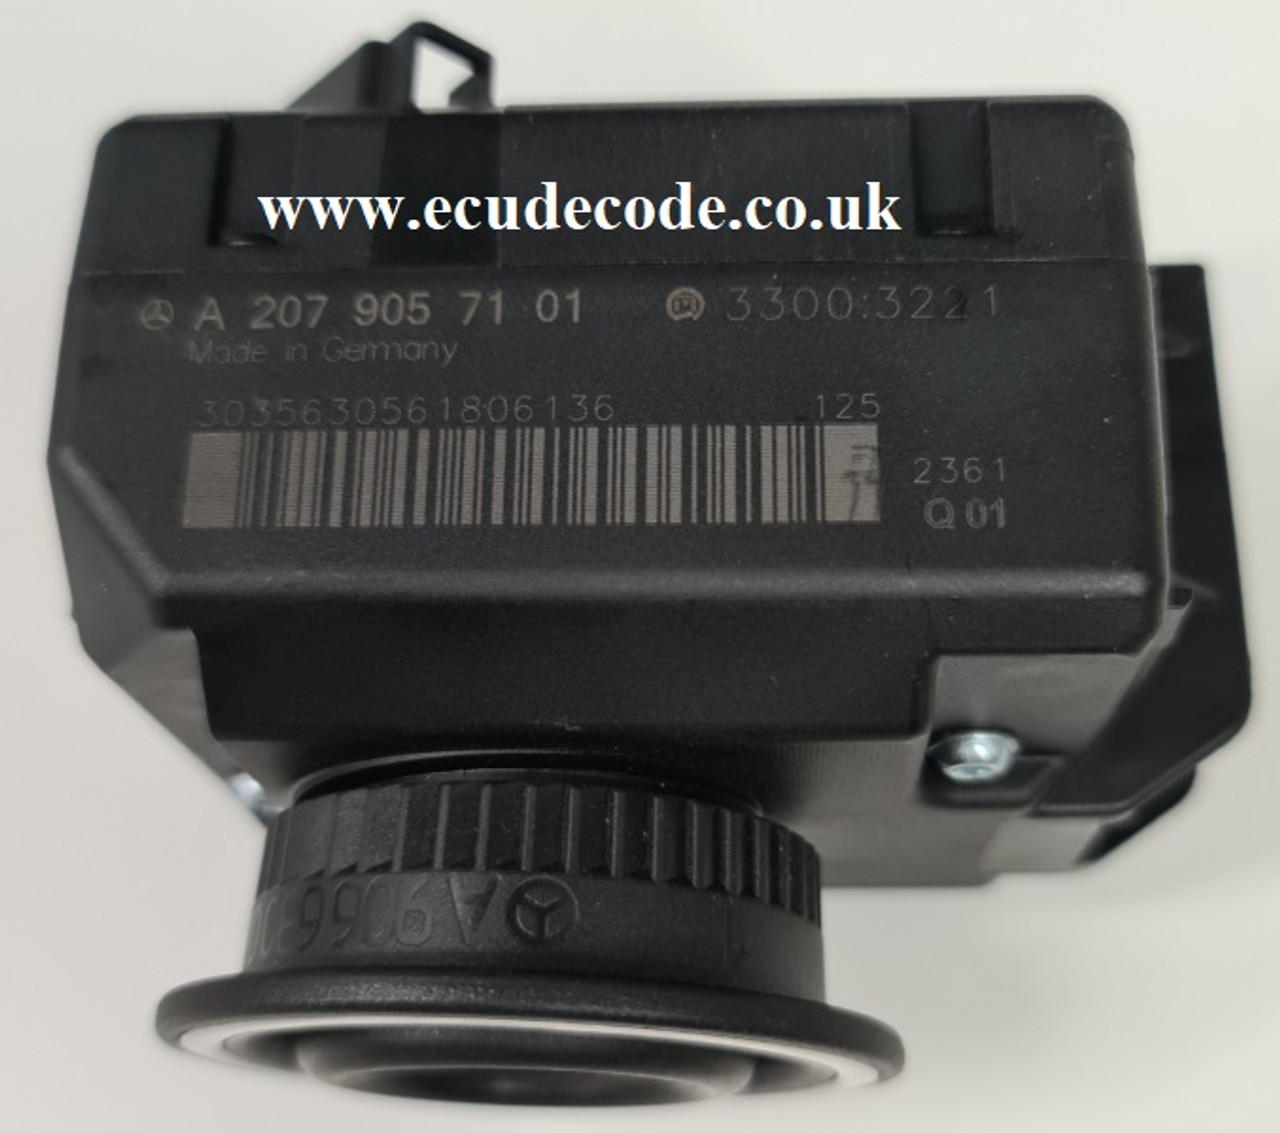 A2079057101 | A 207 905 71 01 | 3300.3201 | Mercedes Electronic Ignition Switch ( EIS ) with Cloning Service